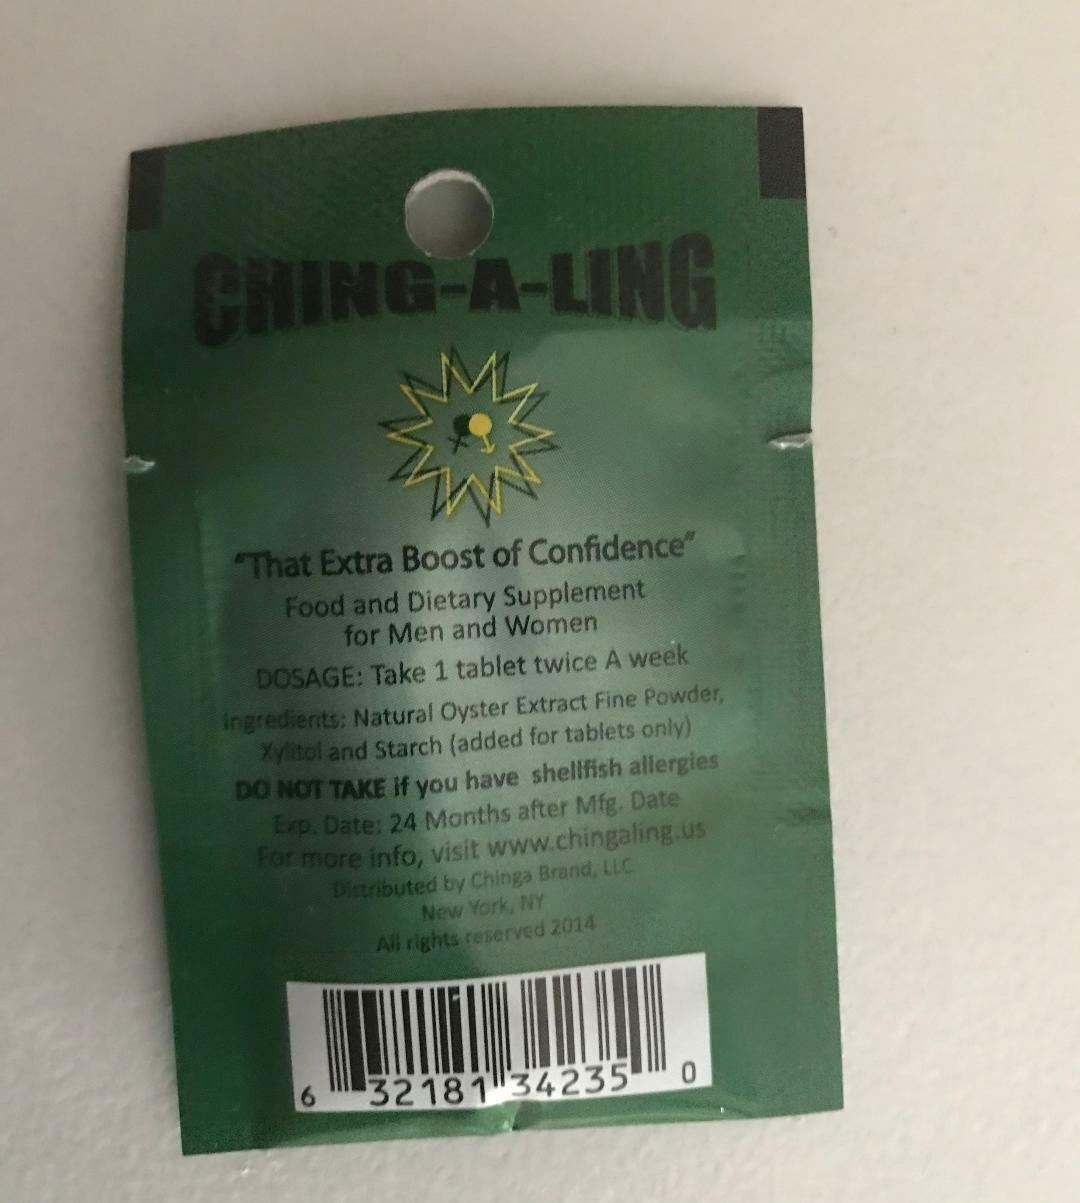 3 tablet  ching-a -ling 100% all natural libido  for men and women  1